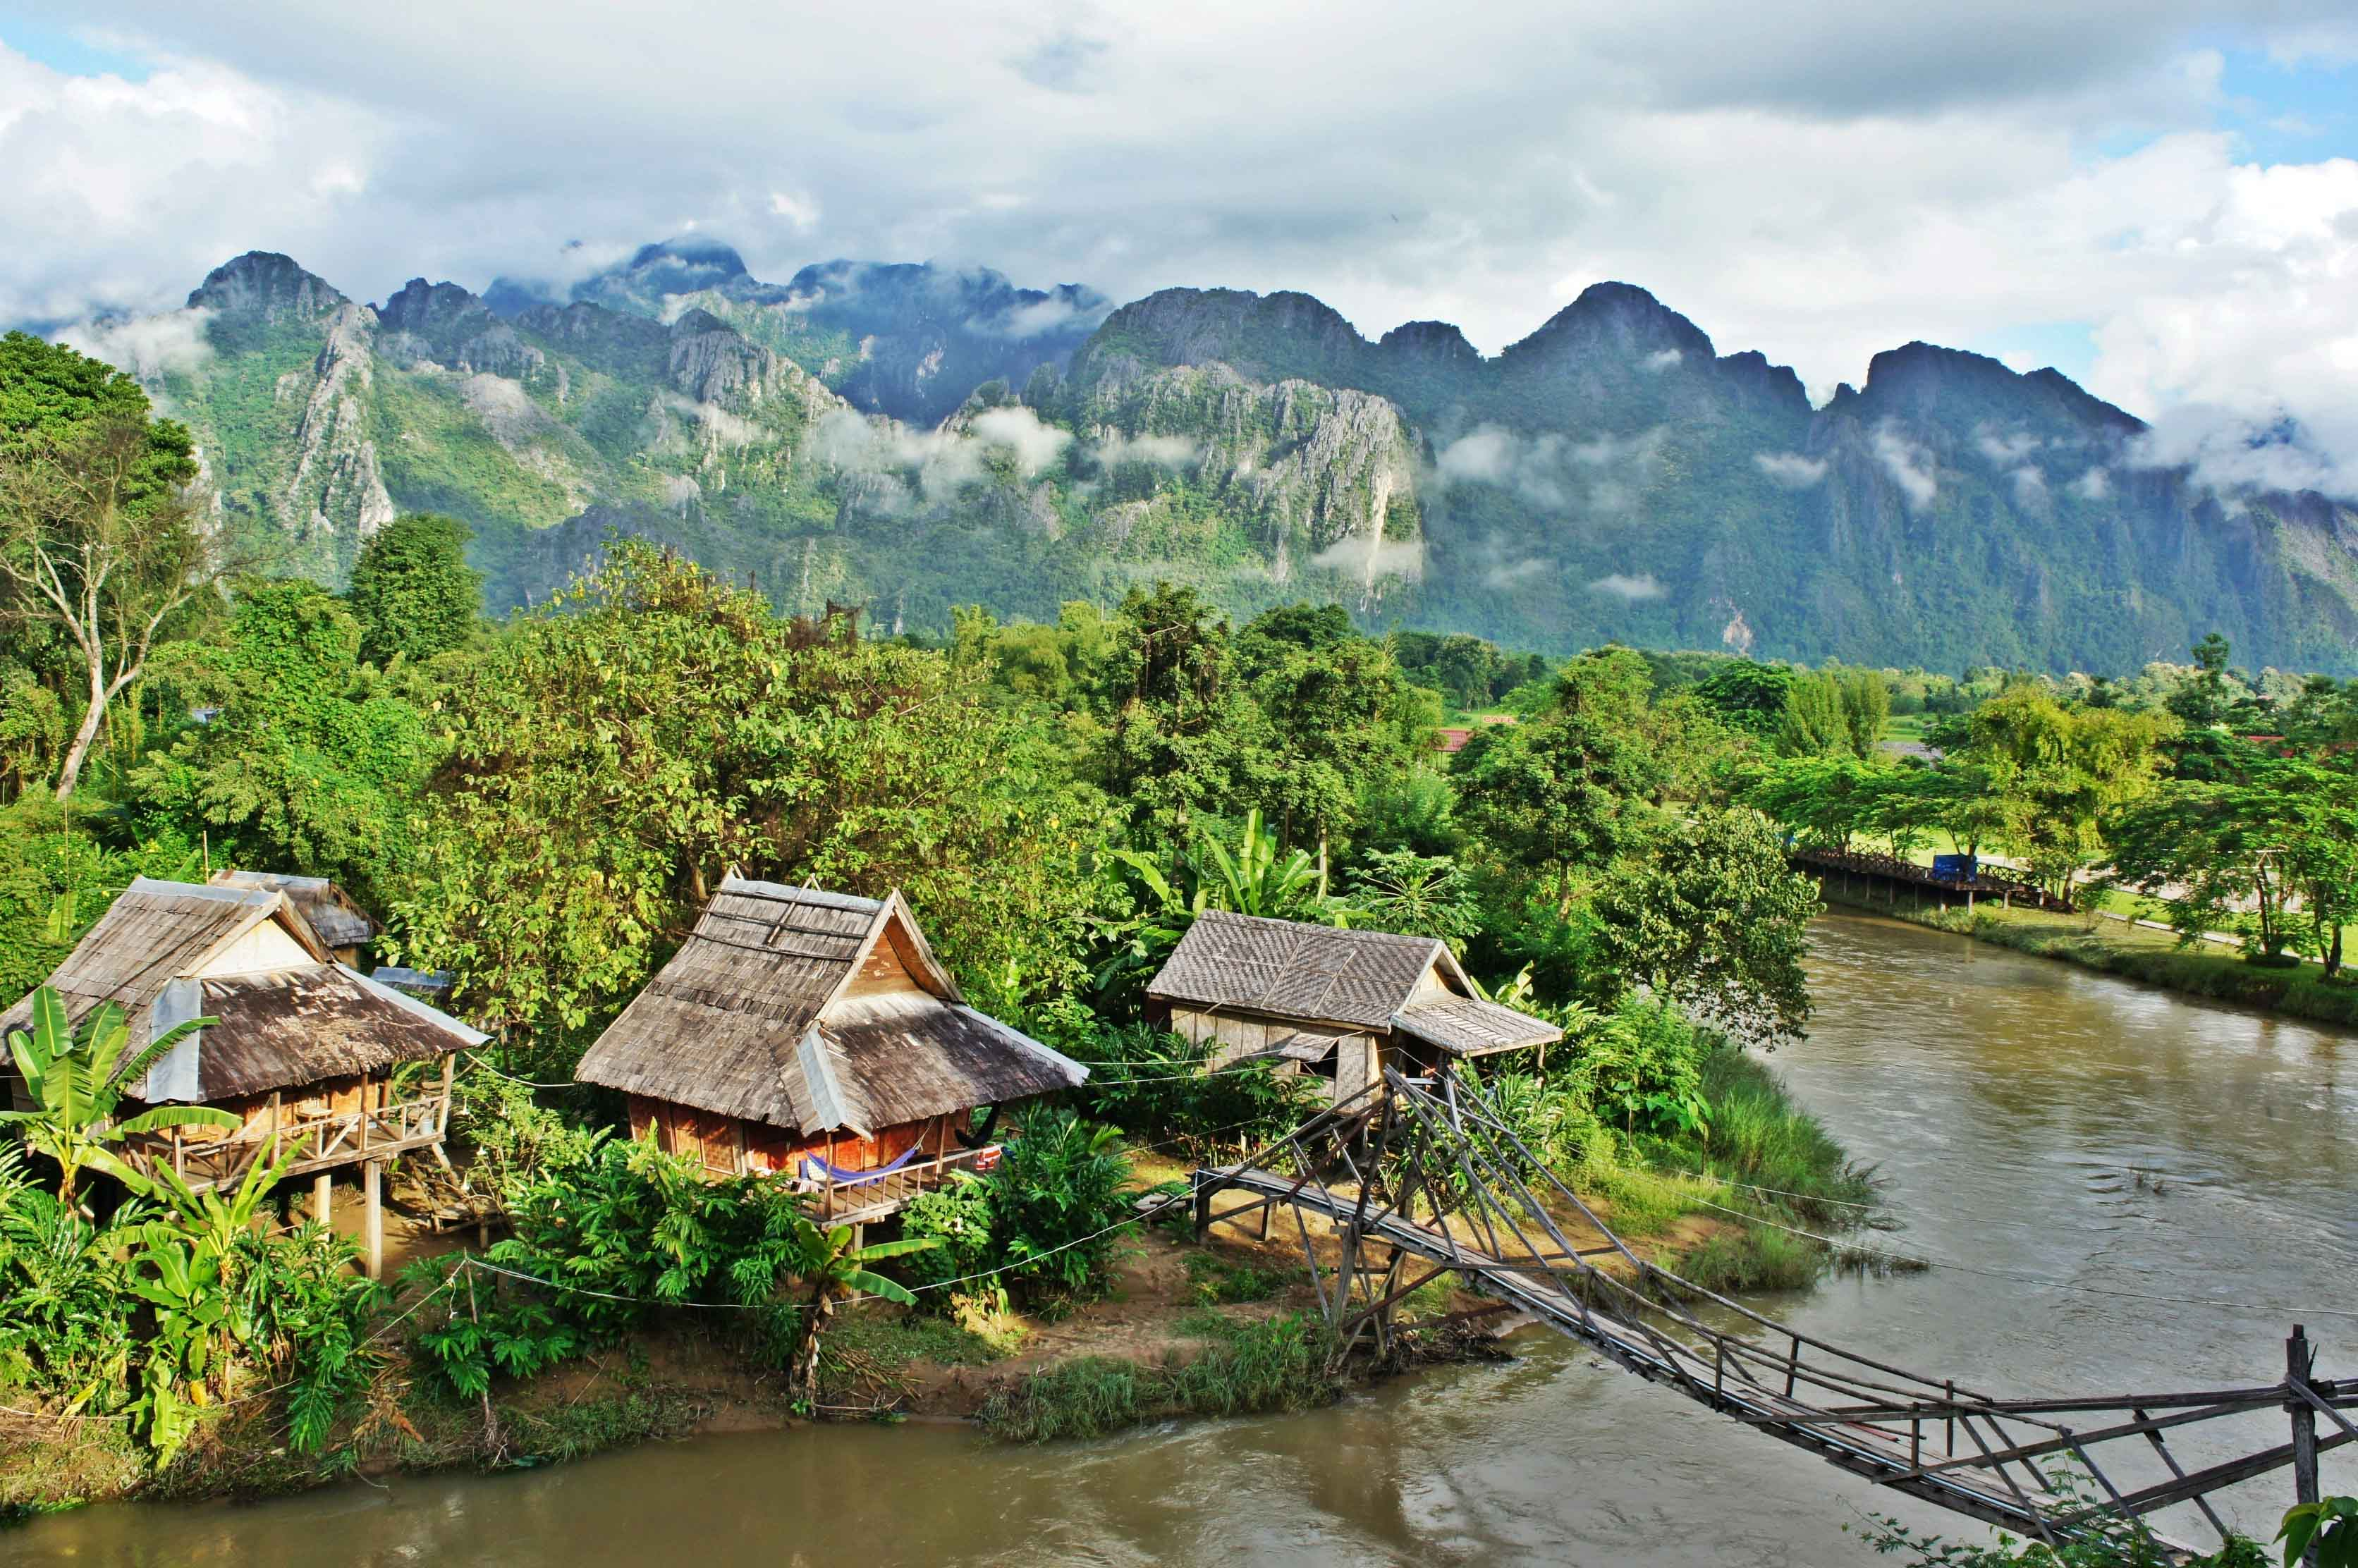 VISIT VANG VIENG – THE PARTY CAPITAL OF SOUTH-EAST ASIA